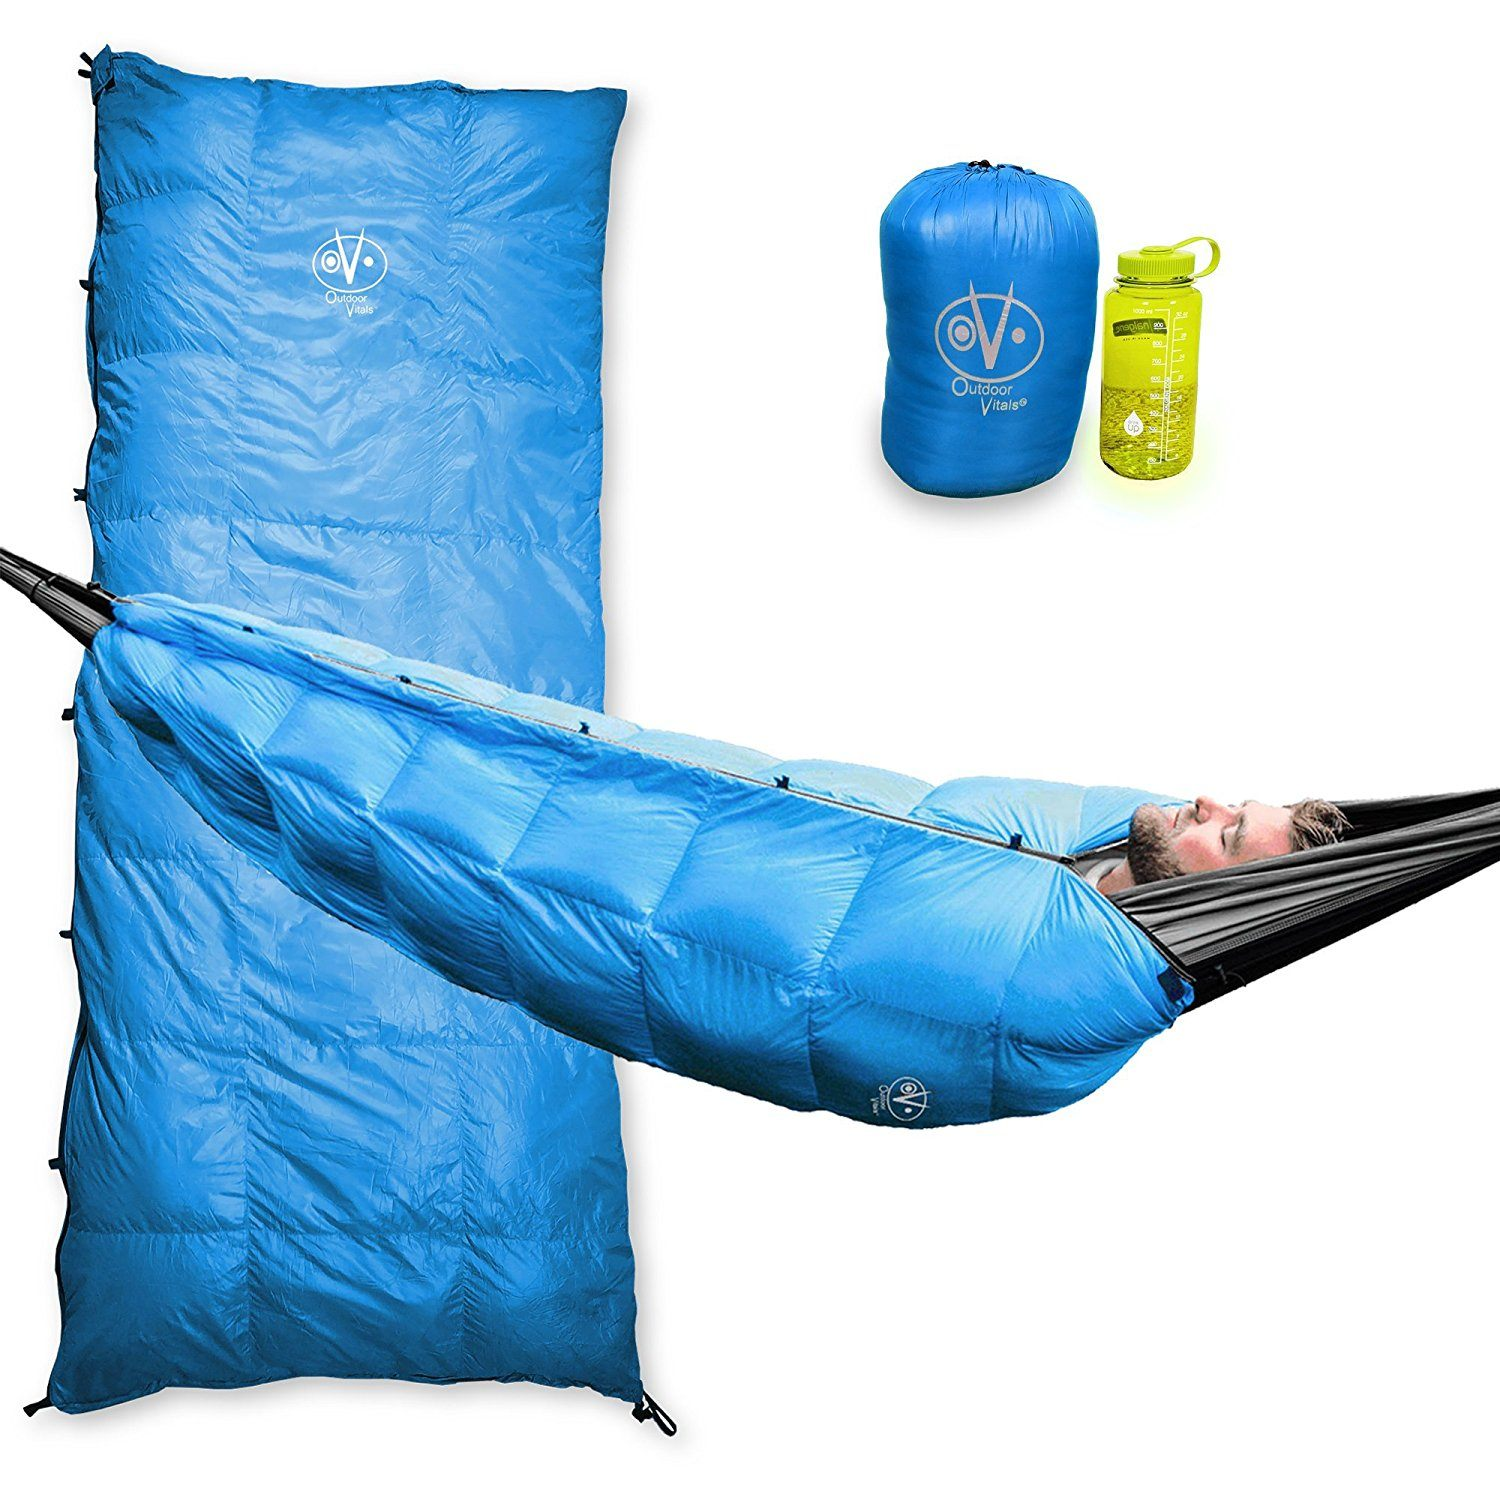 Outdoor Vitals Aerie 30°F Down Underquilt